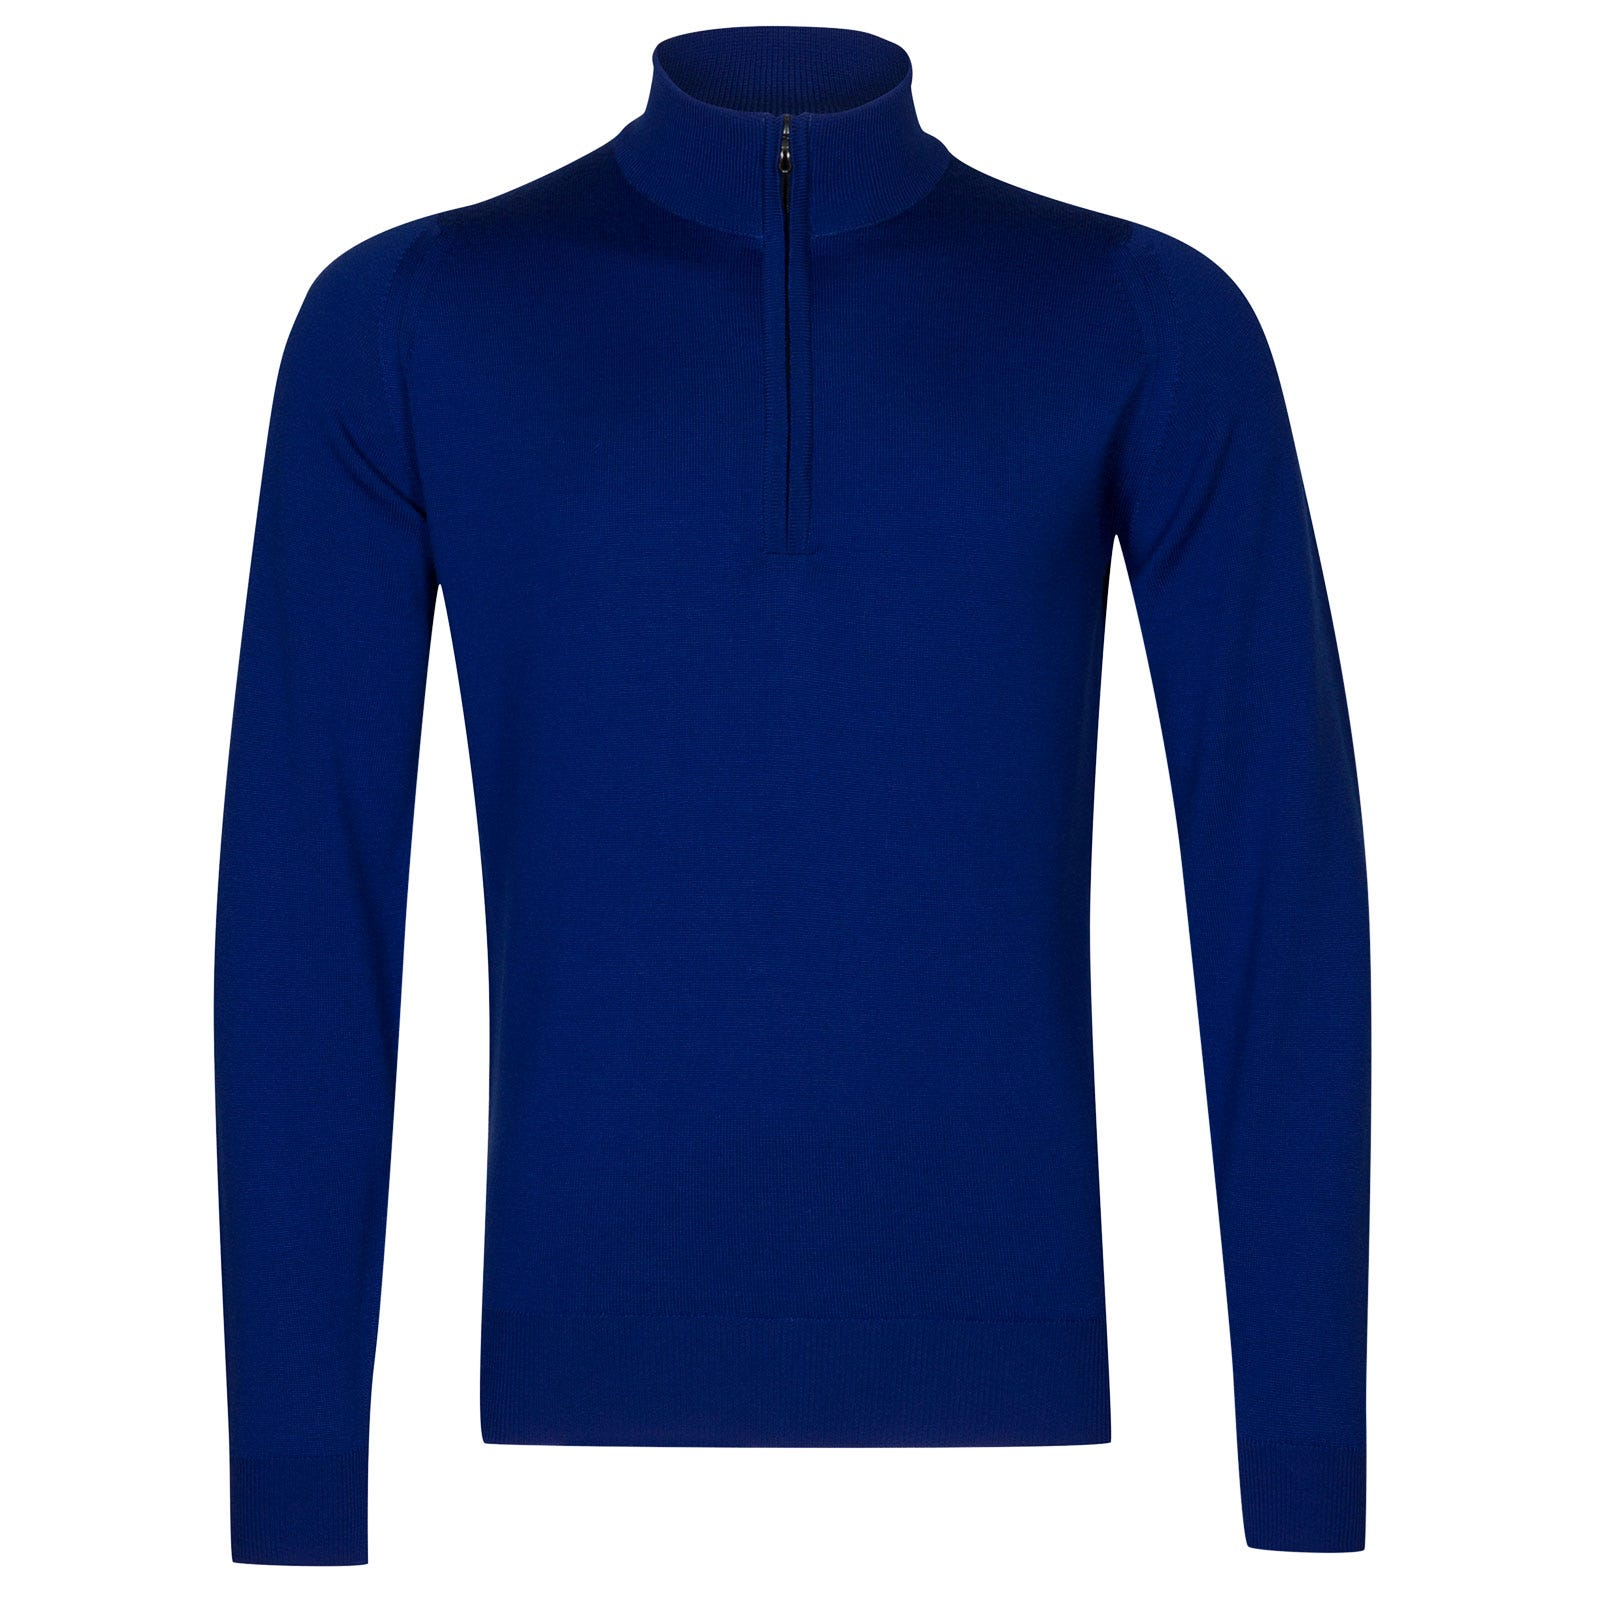 John Smedley tapton Merino Wool Pullover in Coniston Blue-S